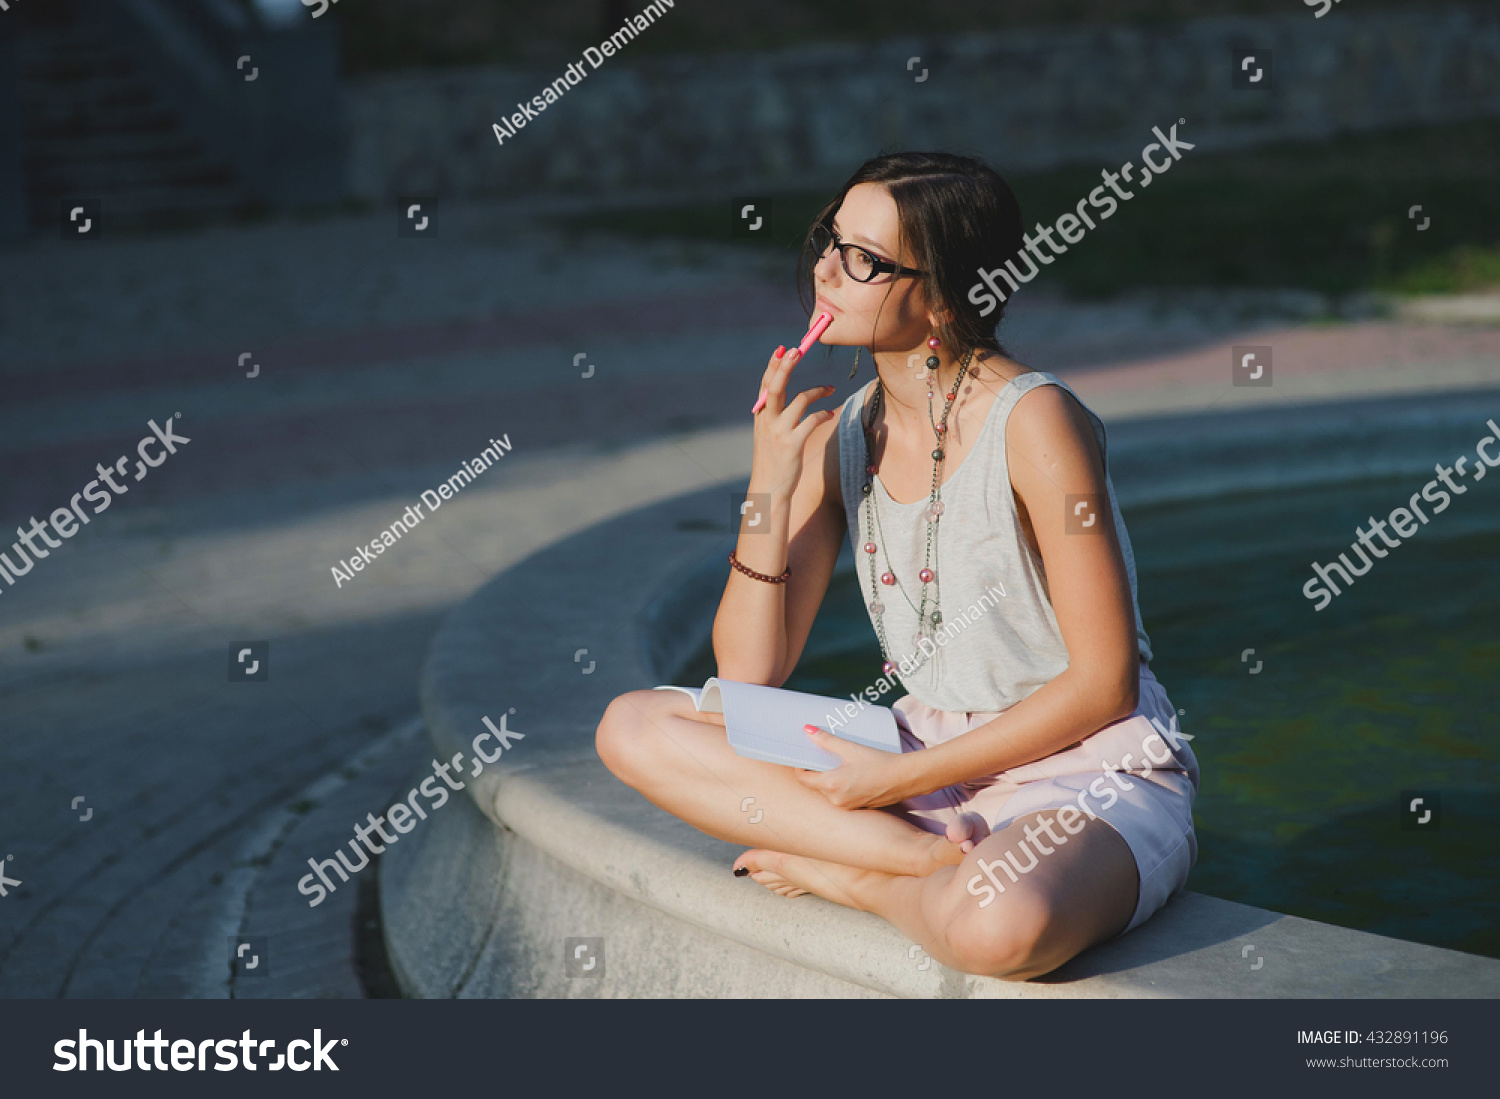 https://image.shutterstock.com/z/stock-photo-young-beautiful-lady-sitting-and-thinking-or-dreaming-432891196.jpg